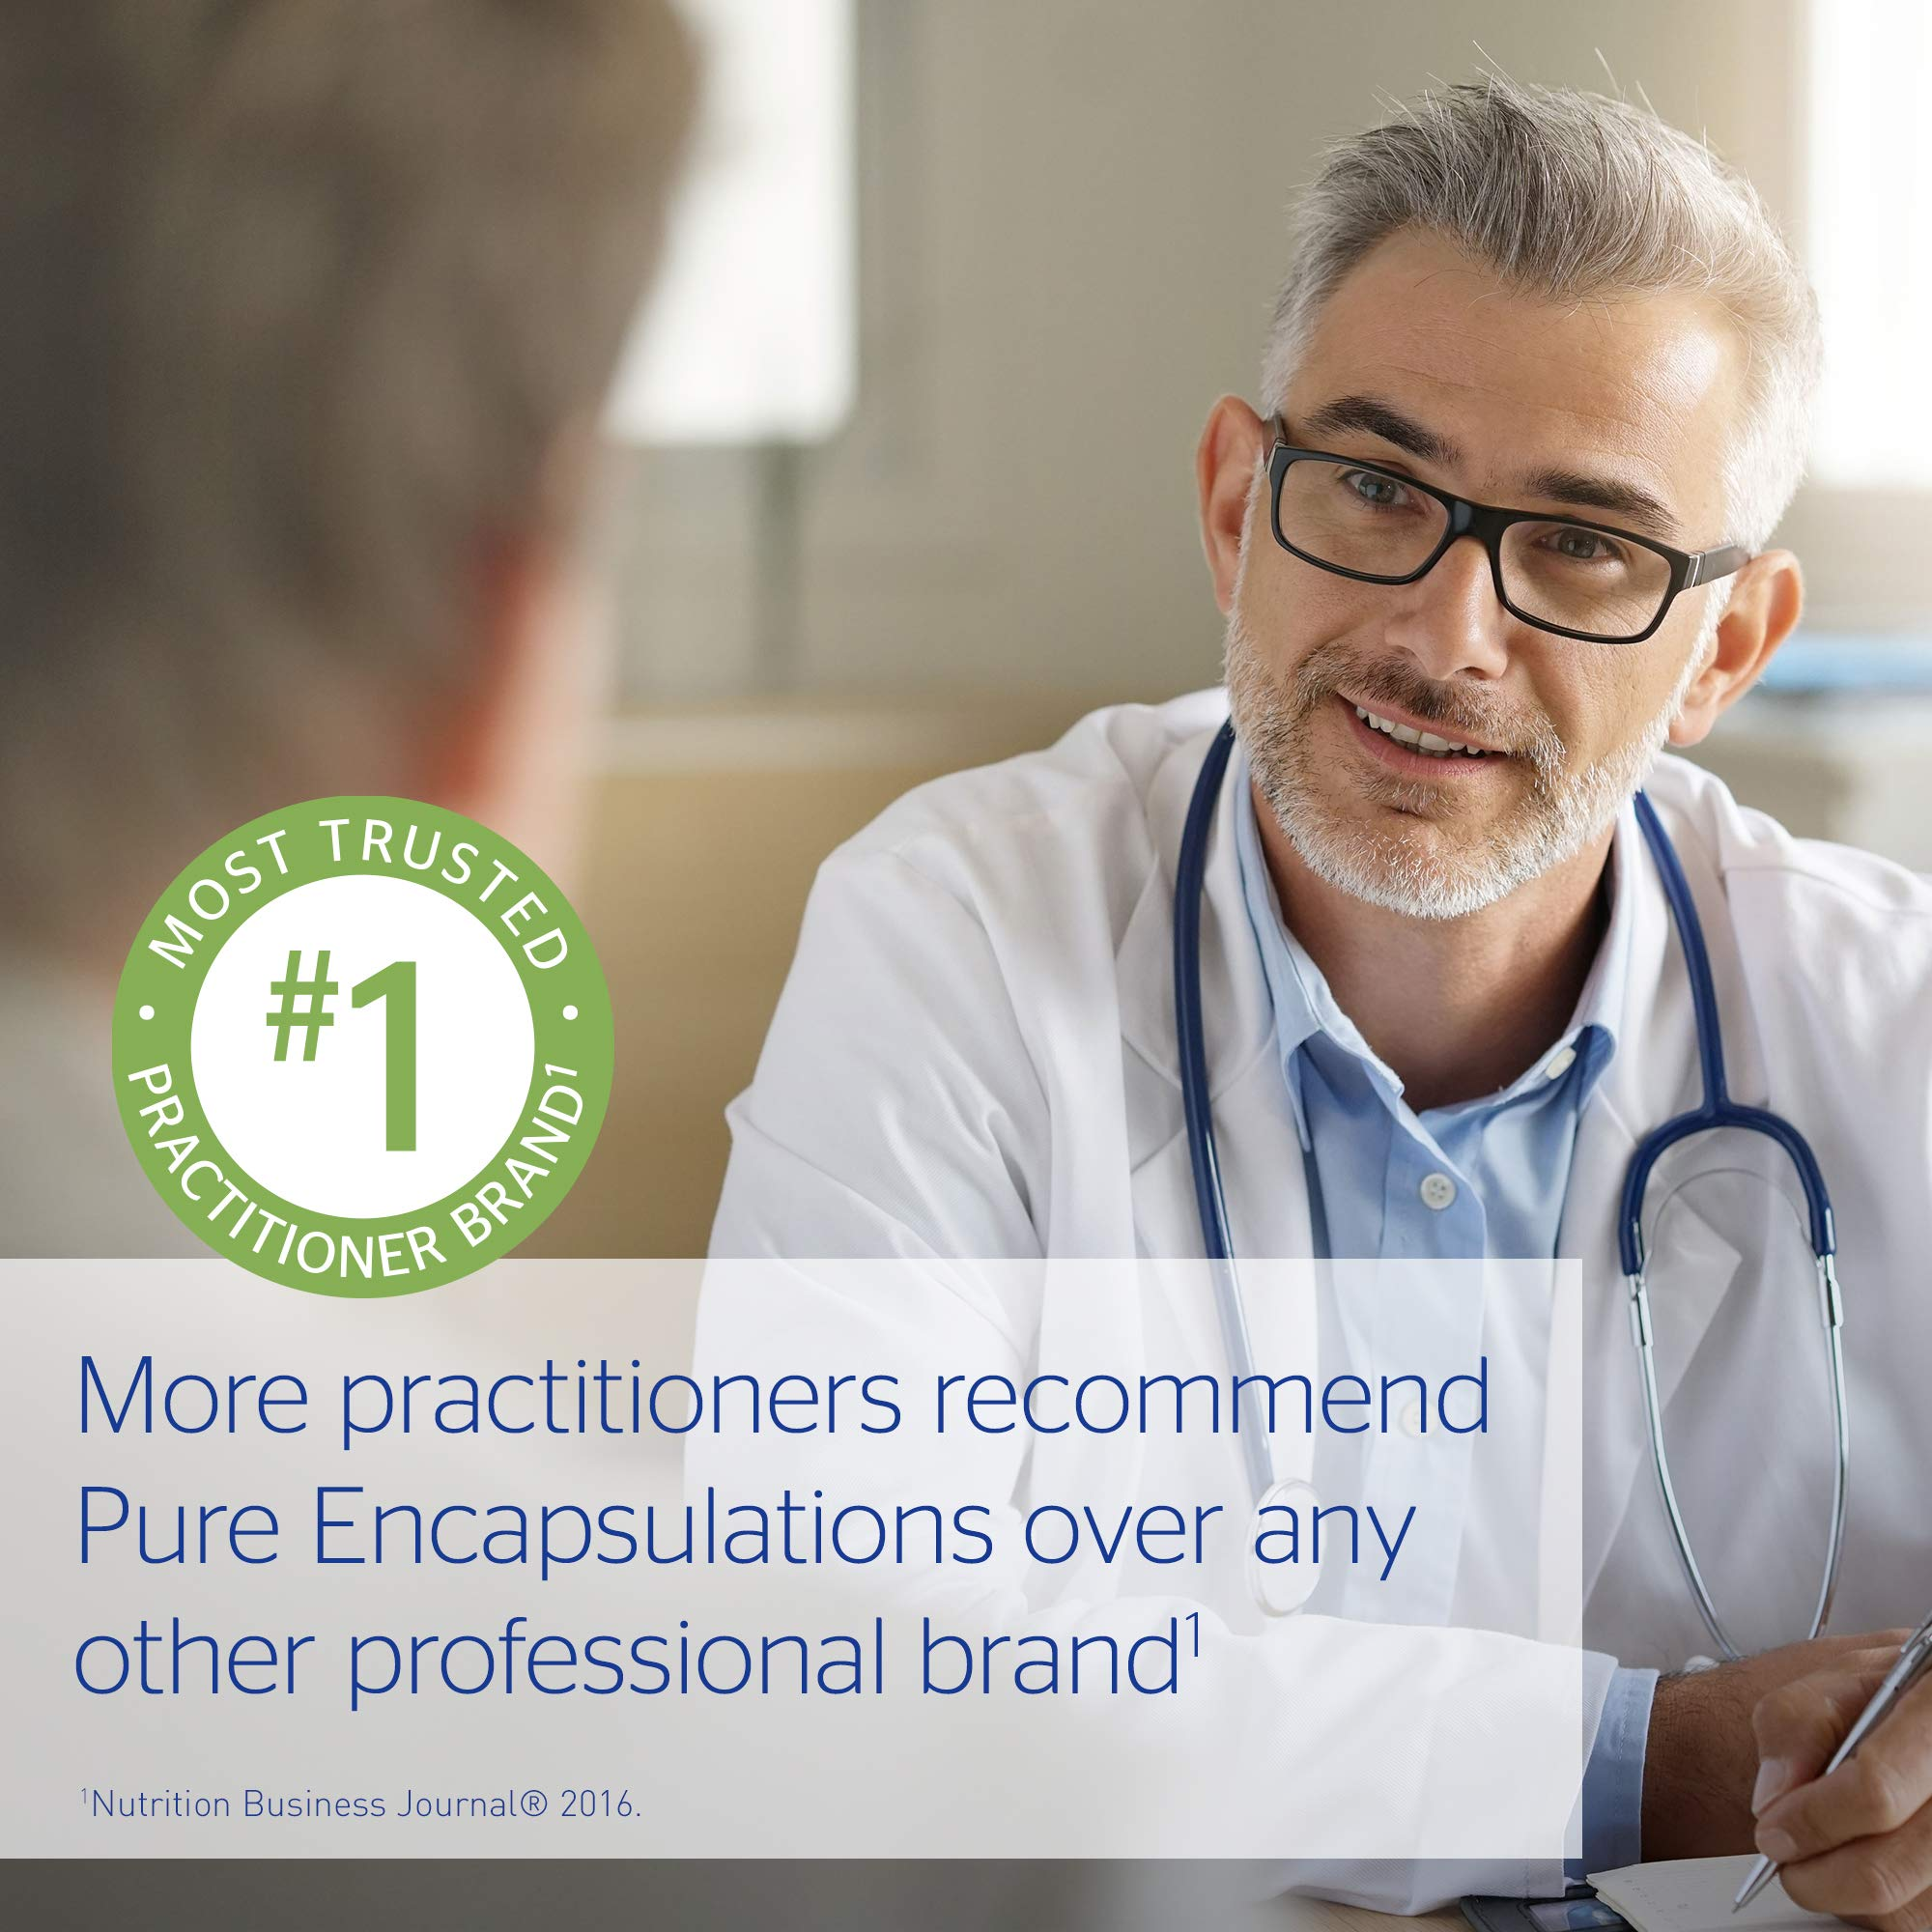 Pure Encapsulations - Black Currant Seed Oil - Hypoallergenic Dietary Supplement - 250 Softgel Capsules by Pure Encapsulations (Image #6)